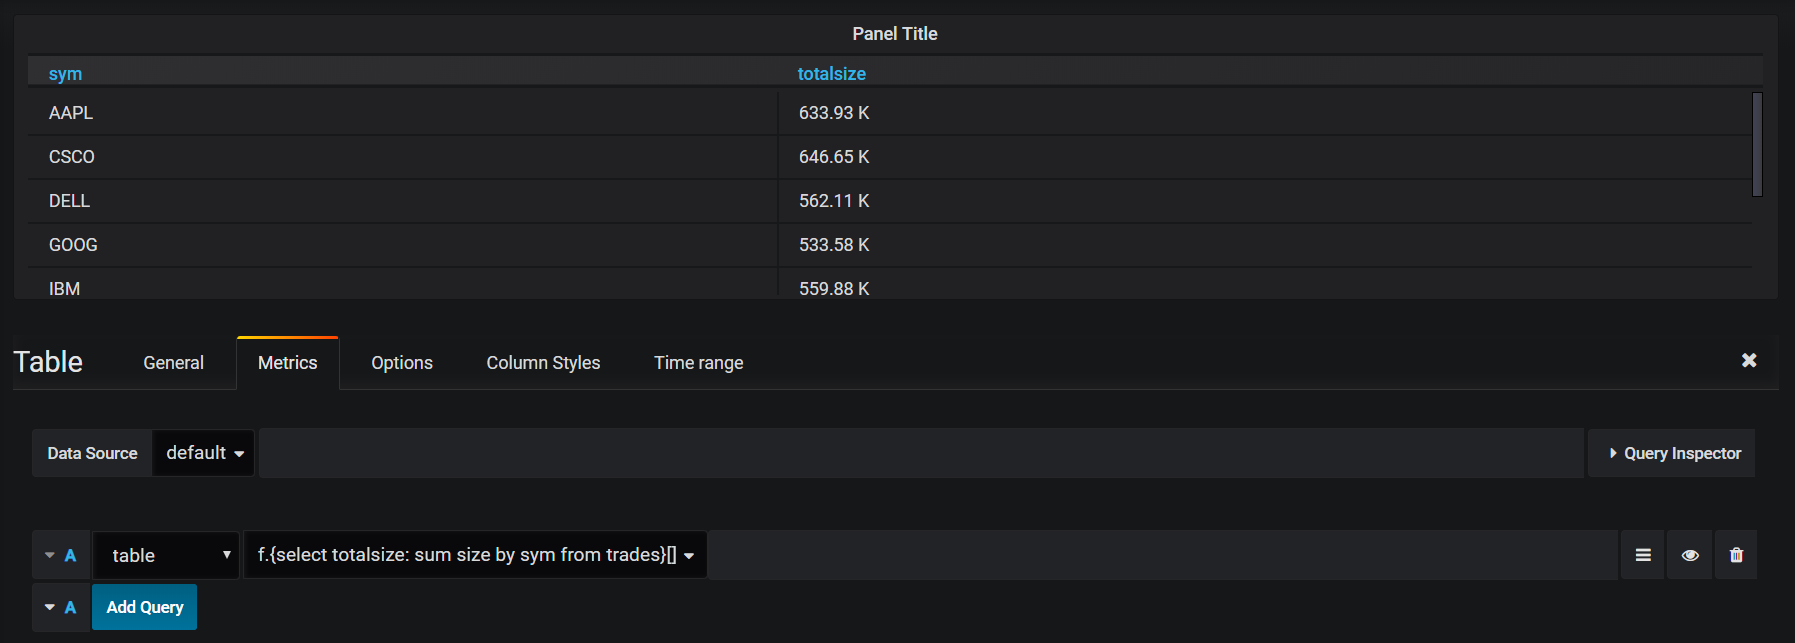 grafana table panel showing result of calling an anonymous function